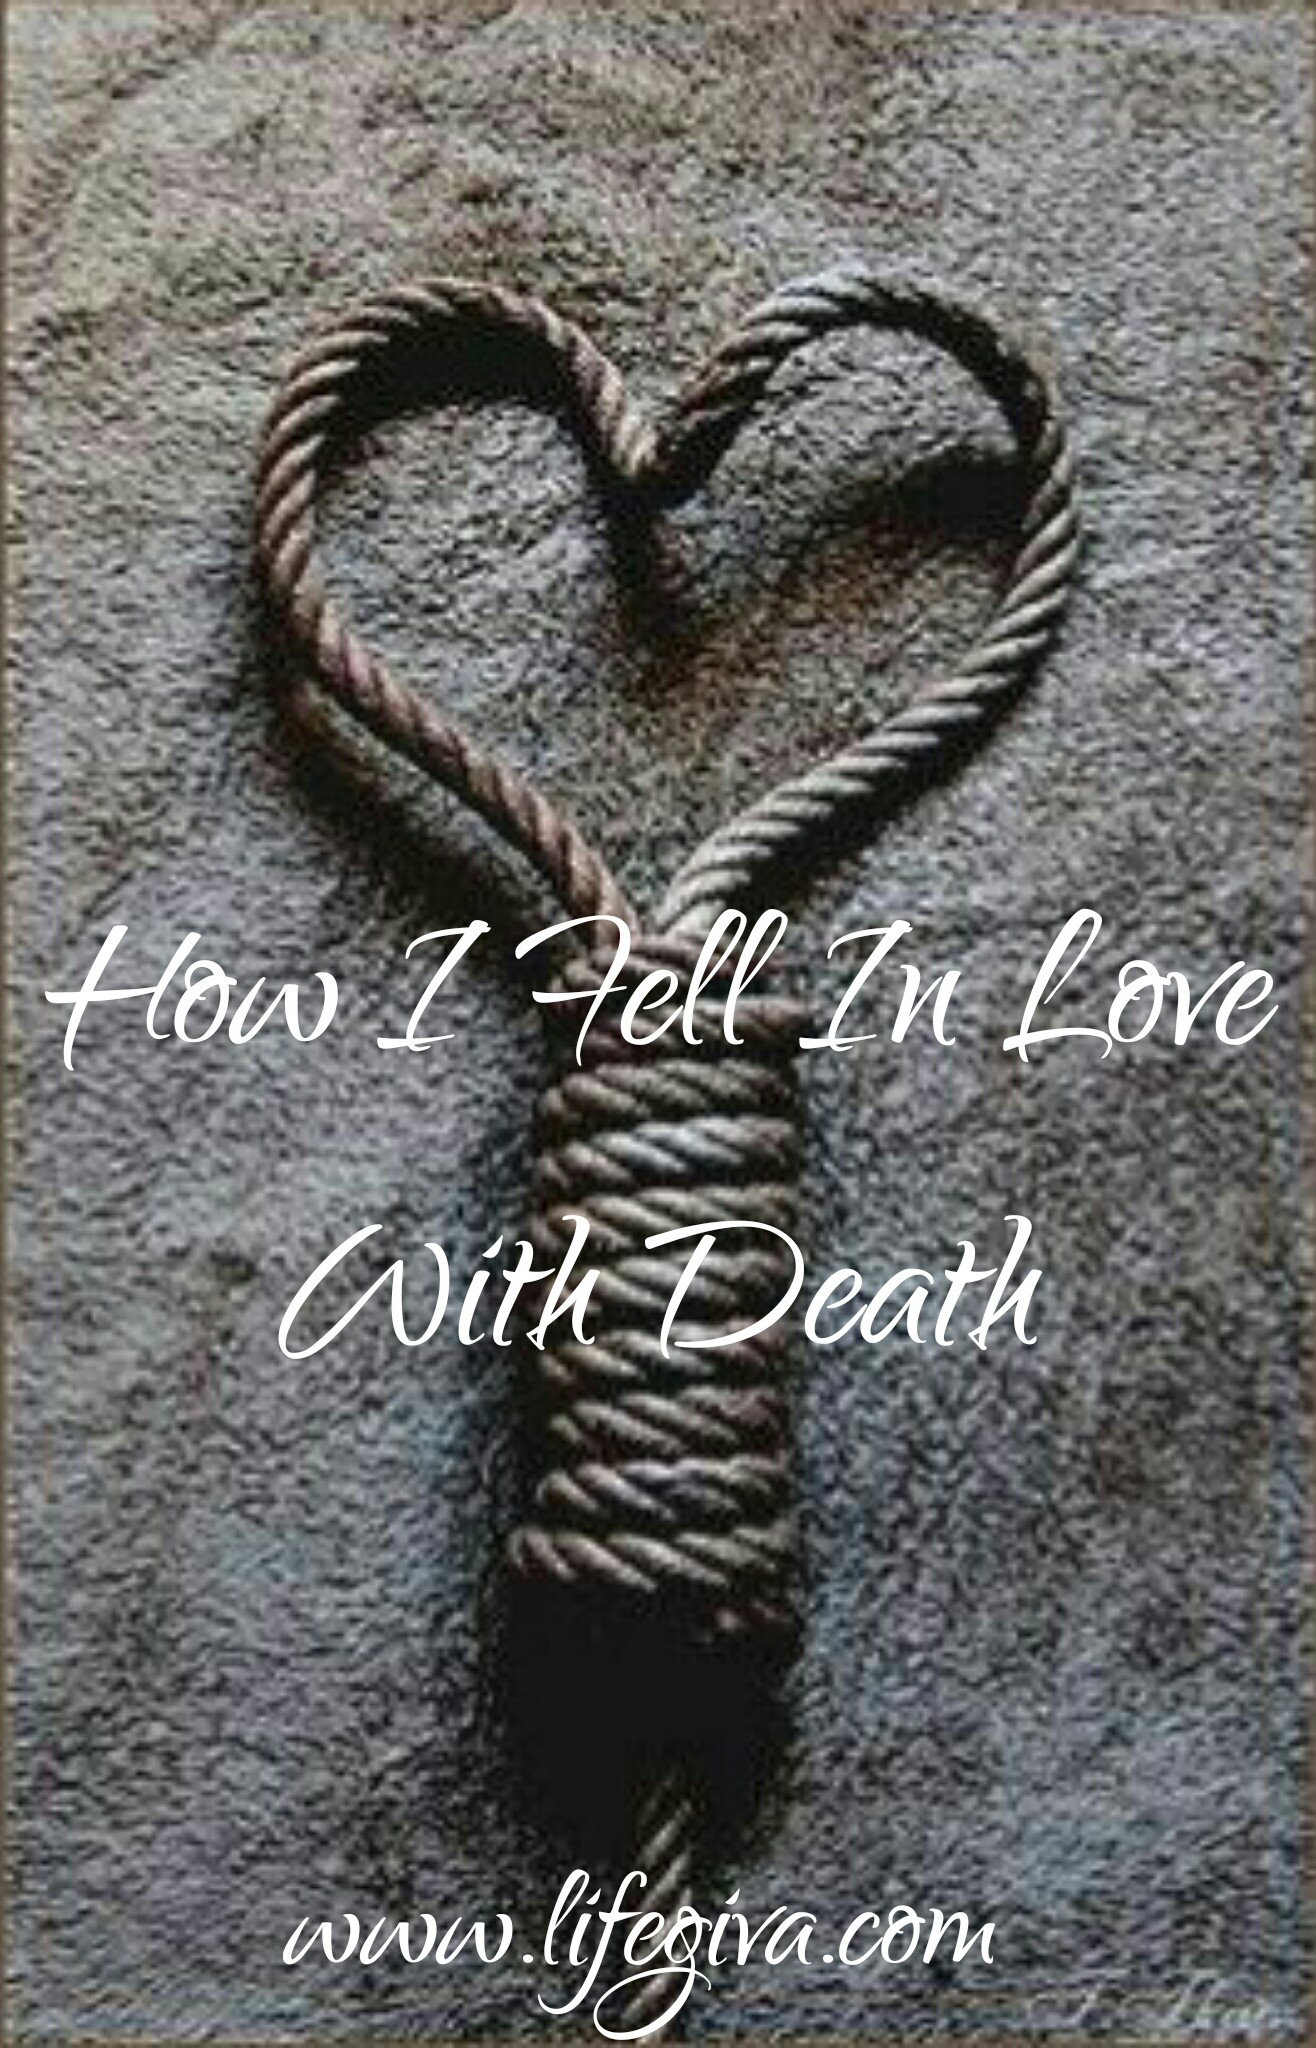 How I Fell In Love With Death